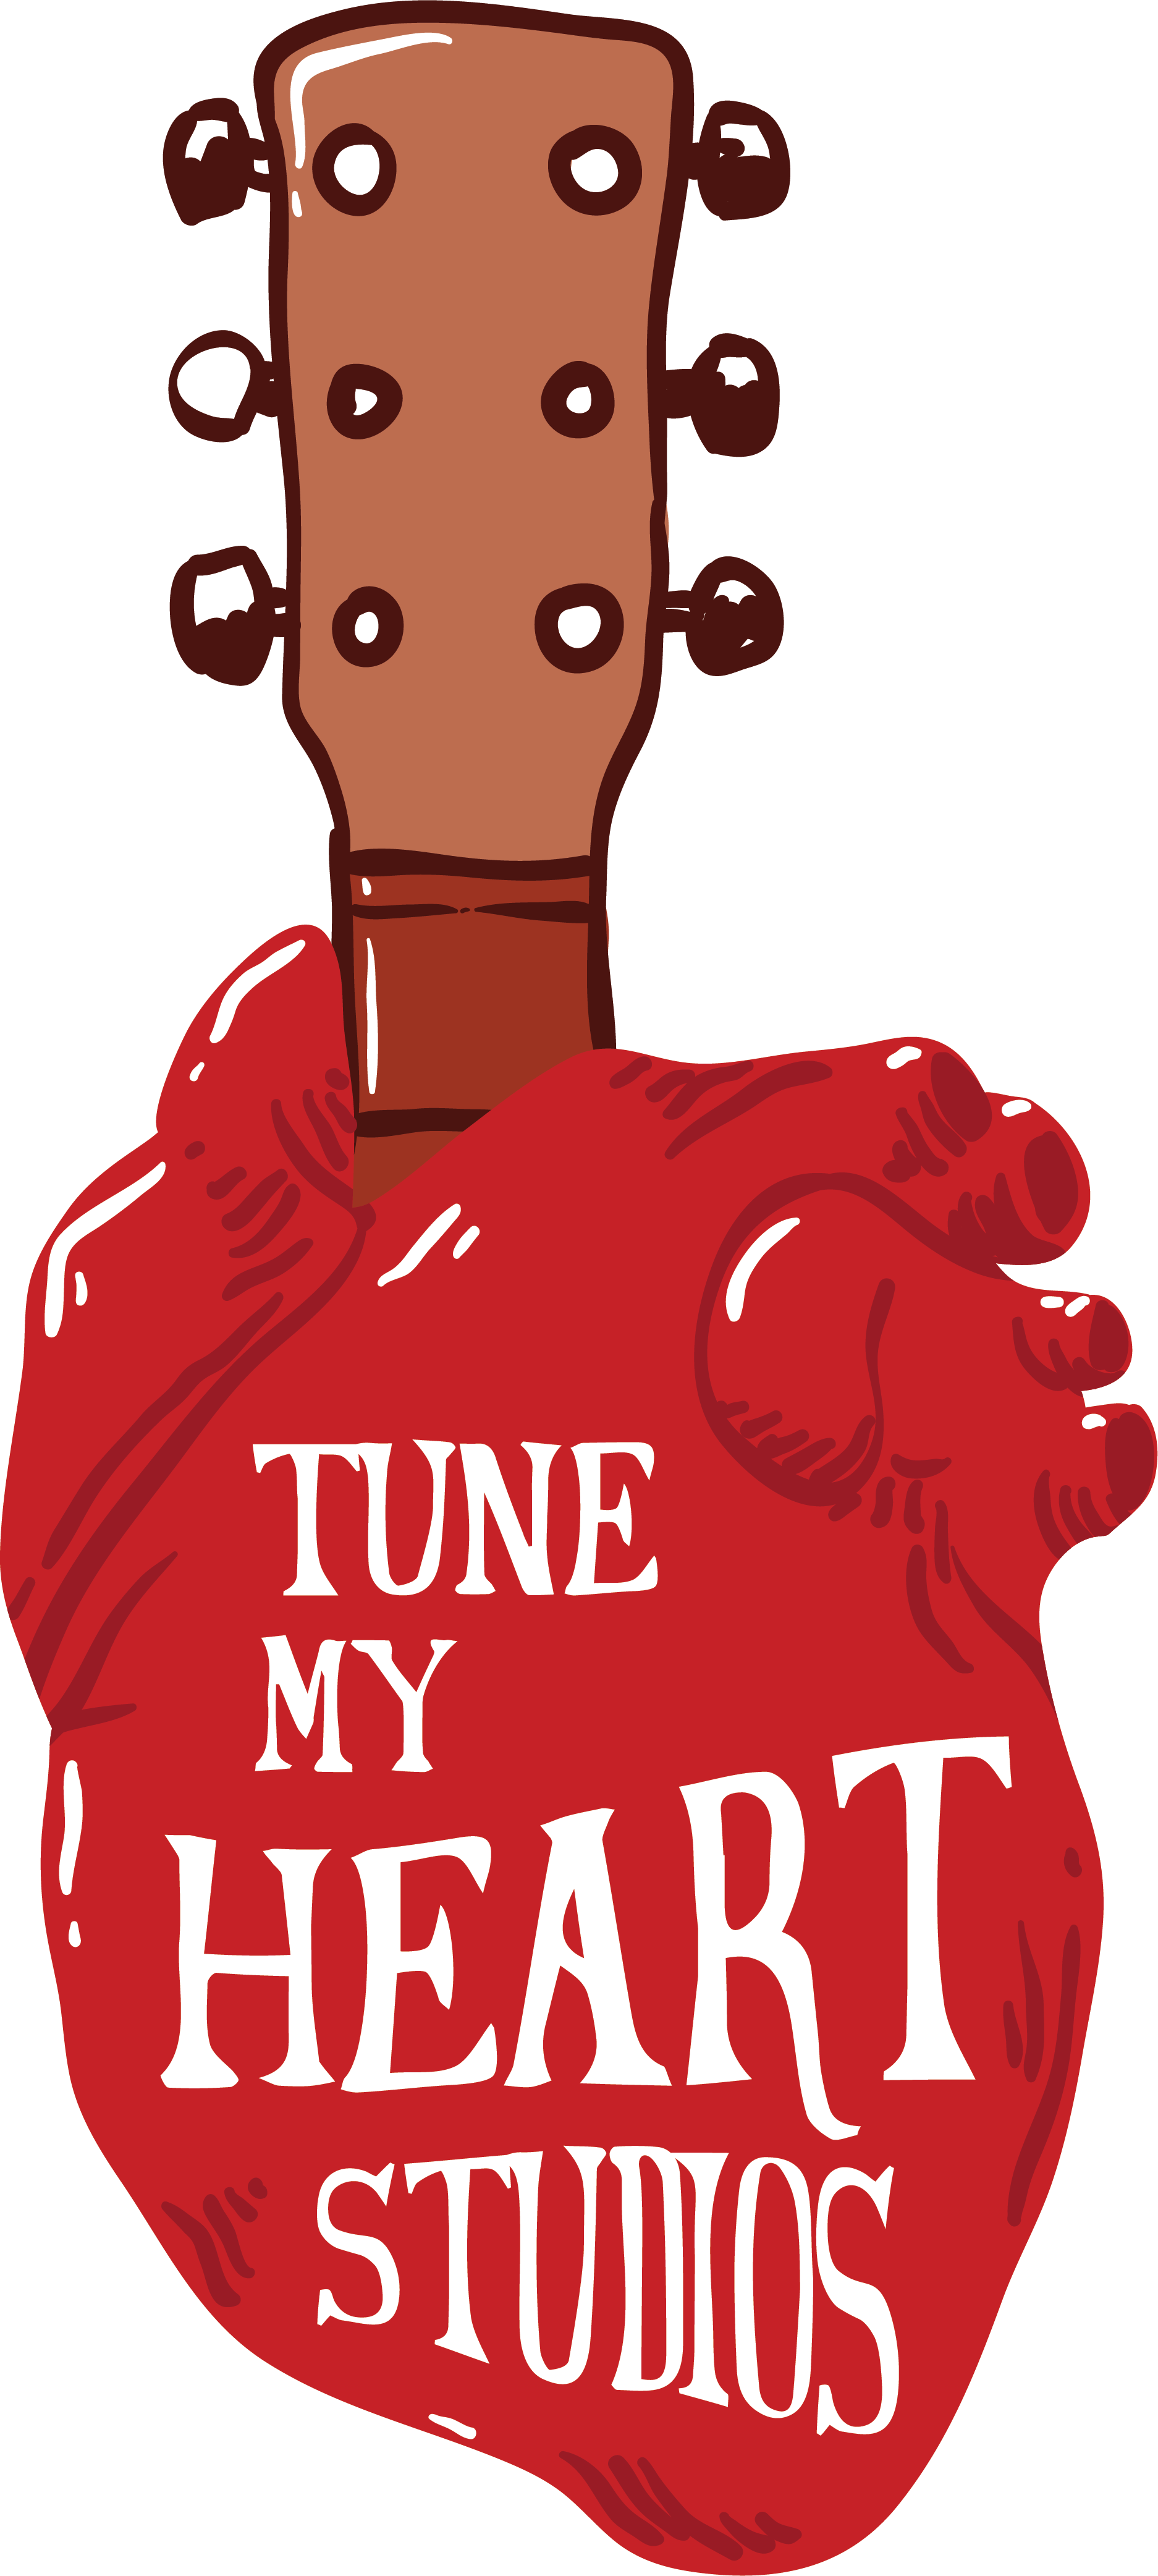 Tune My Heart Studios